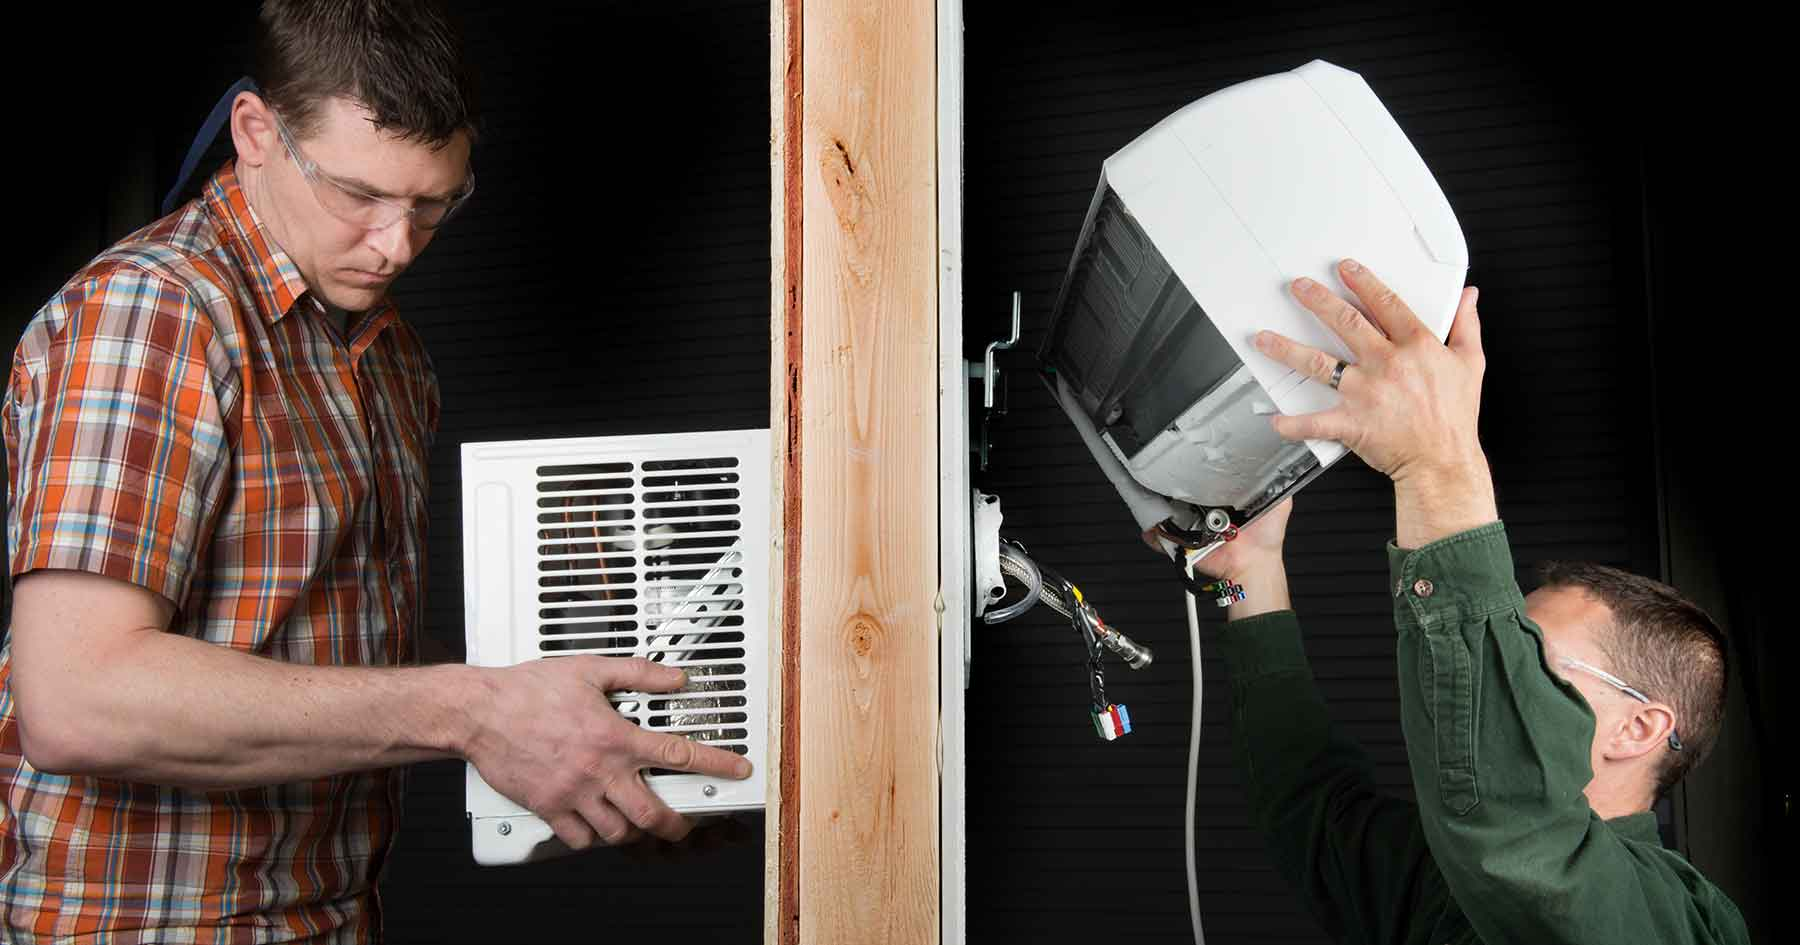 two men shown on opposite sides of a wall installing the ecosnapac heat pump